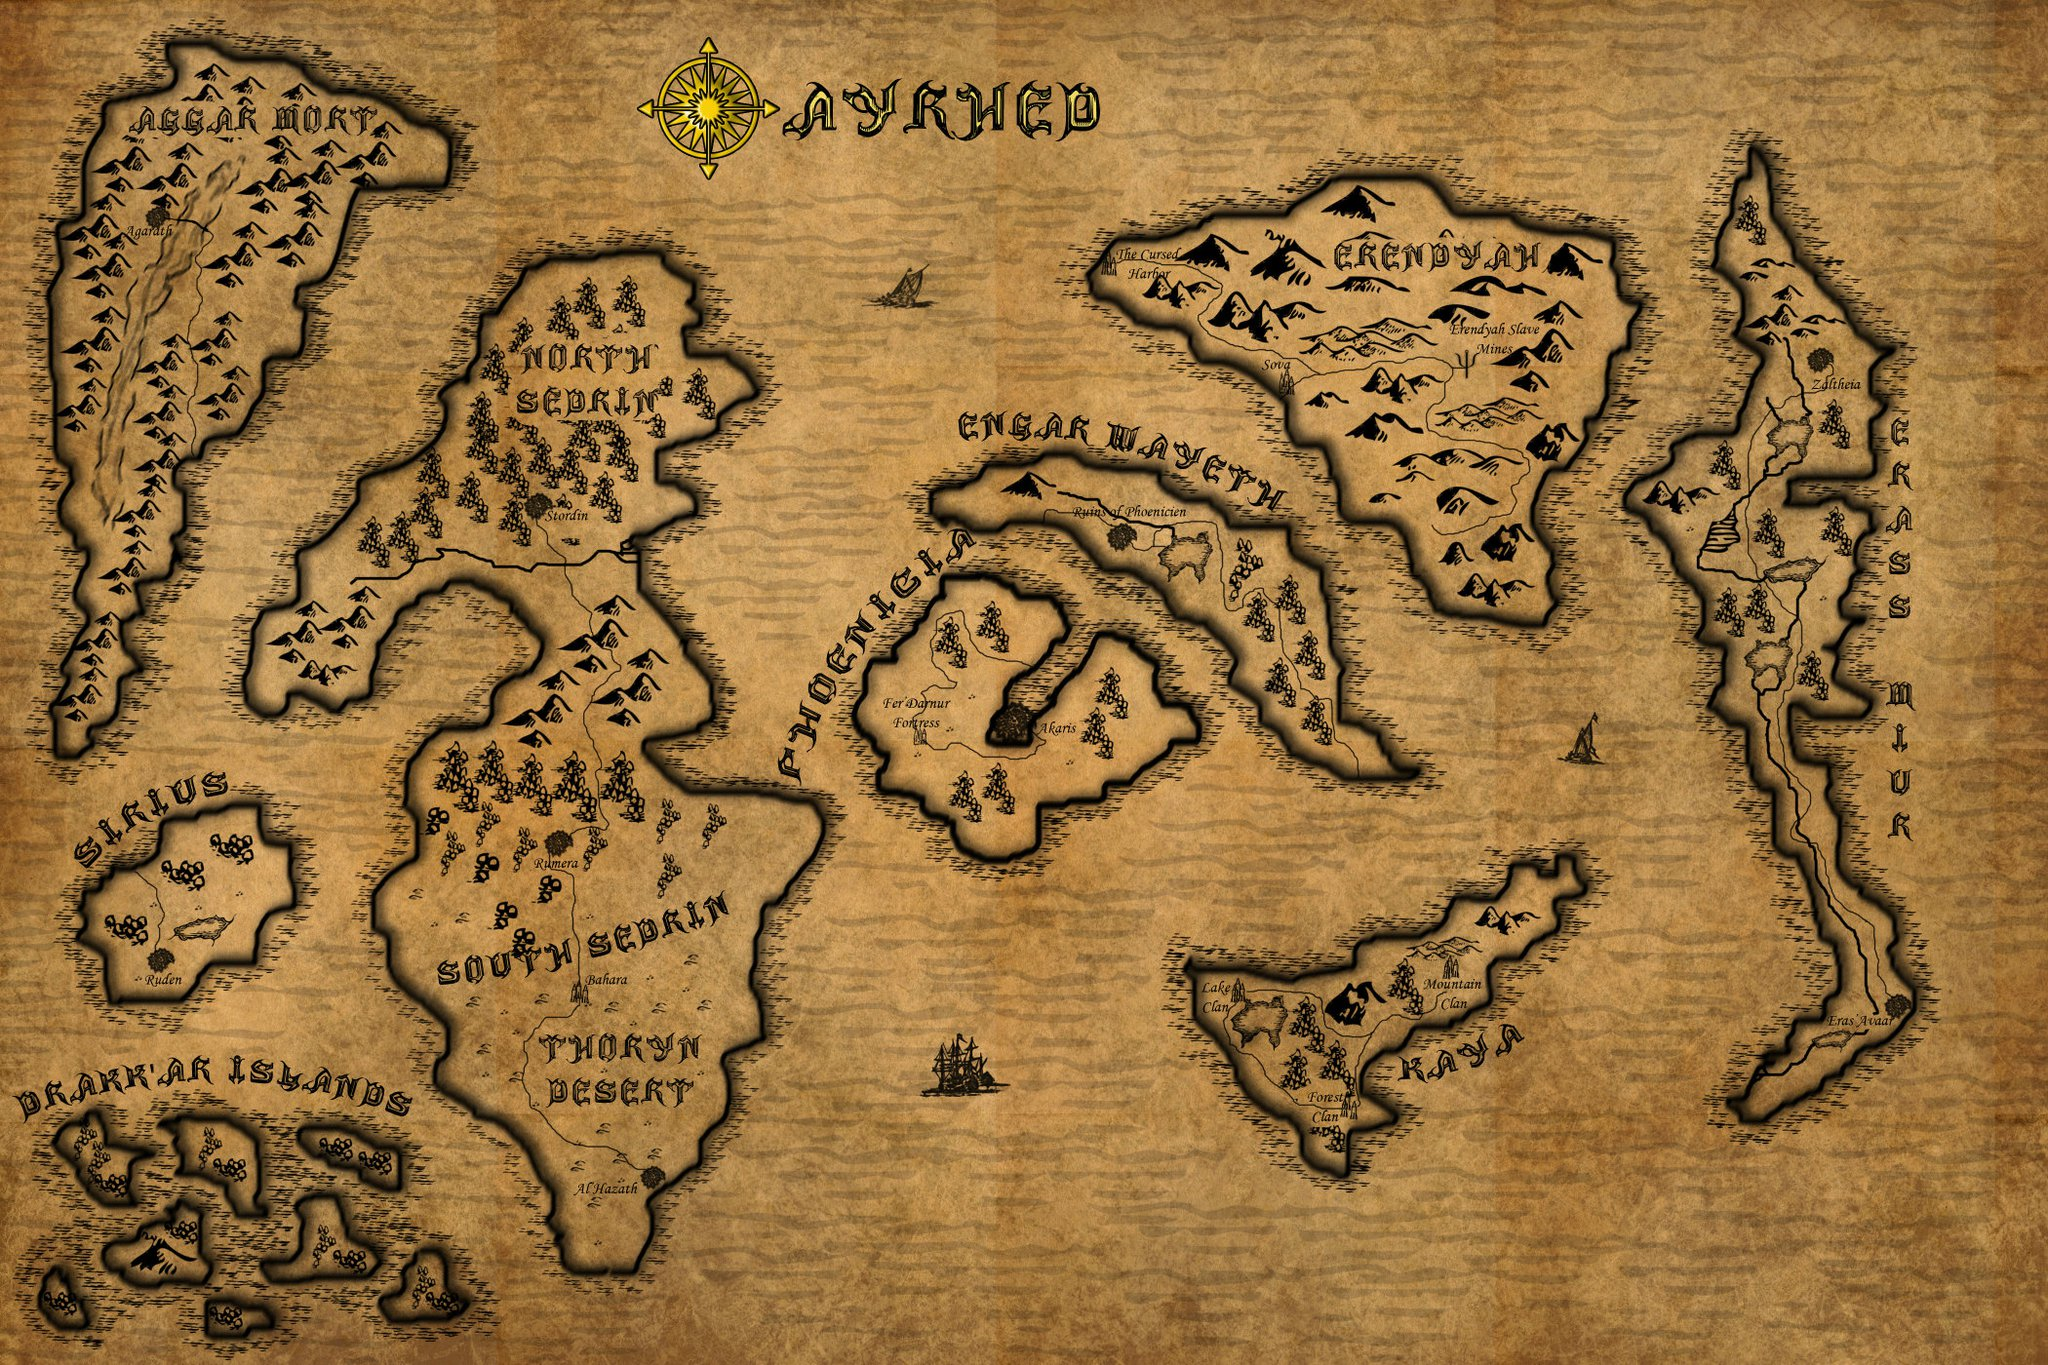 Ayrhed, the fictional world of EotGP